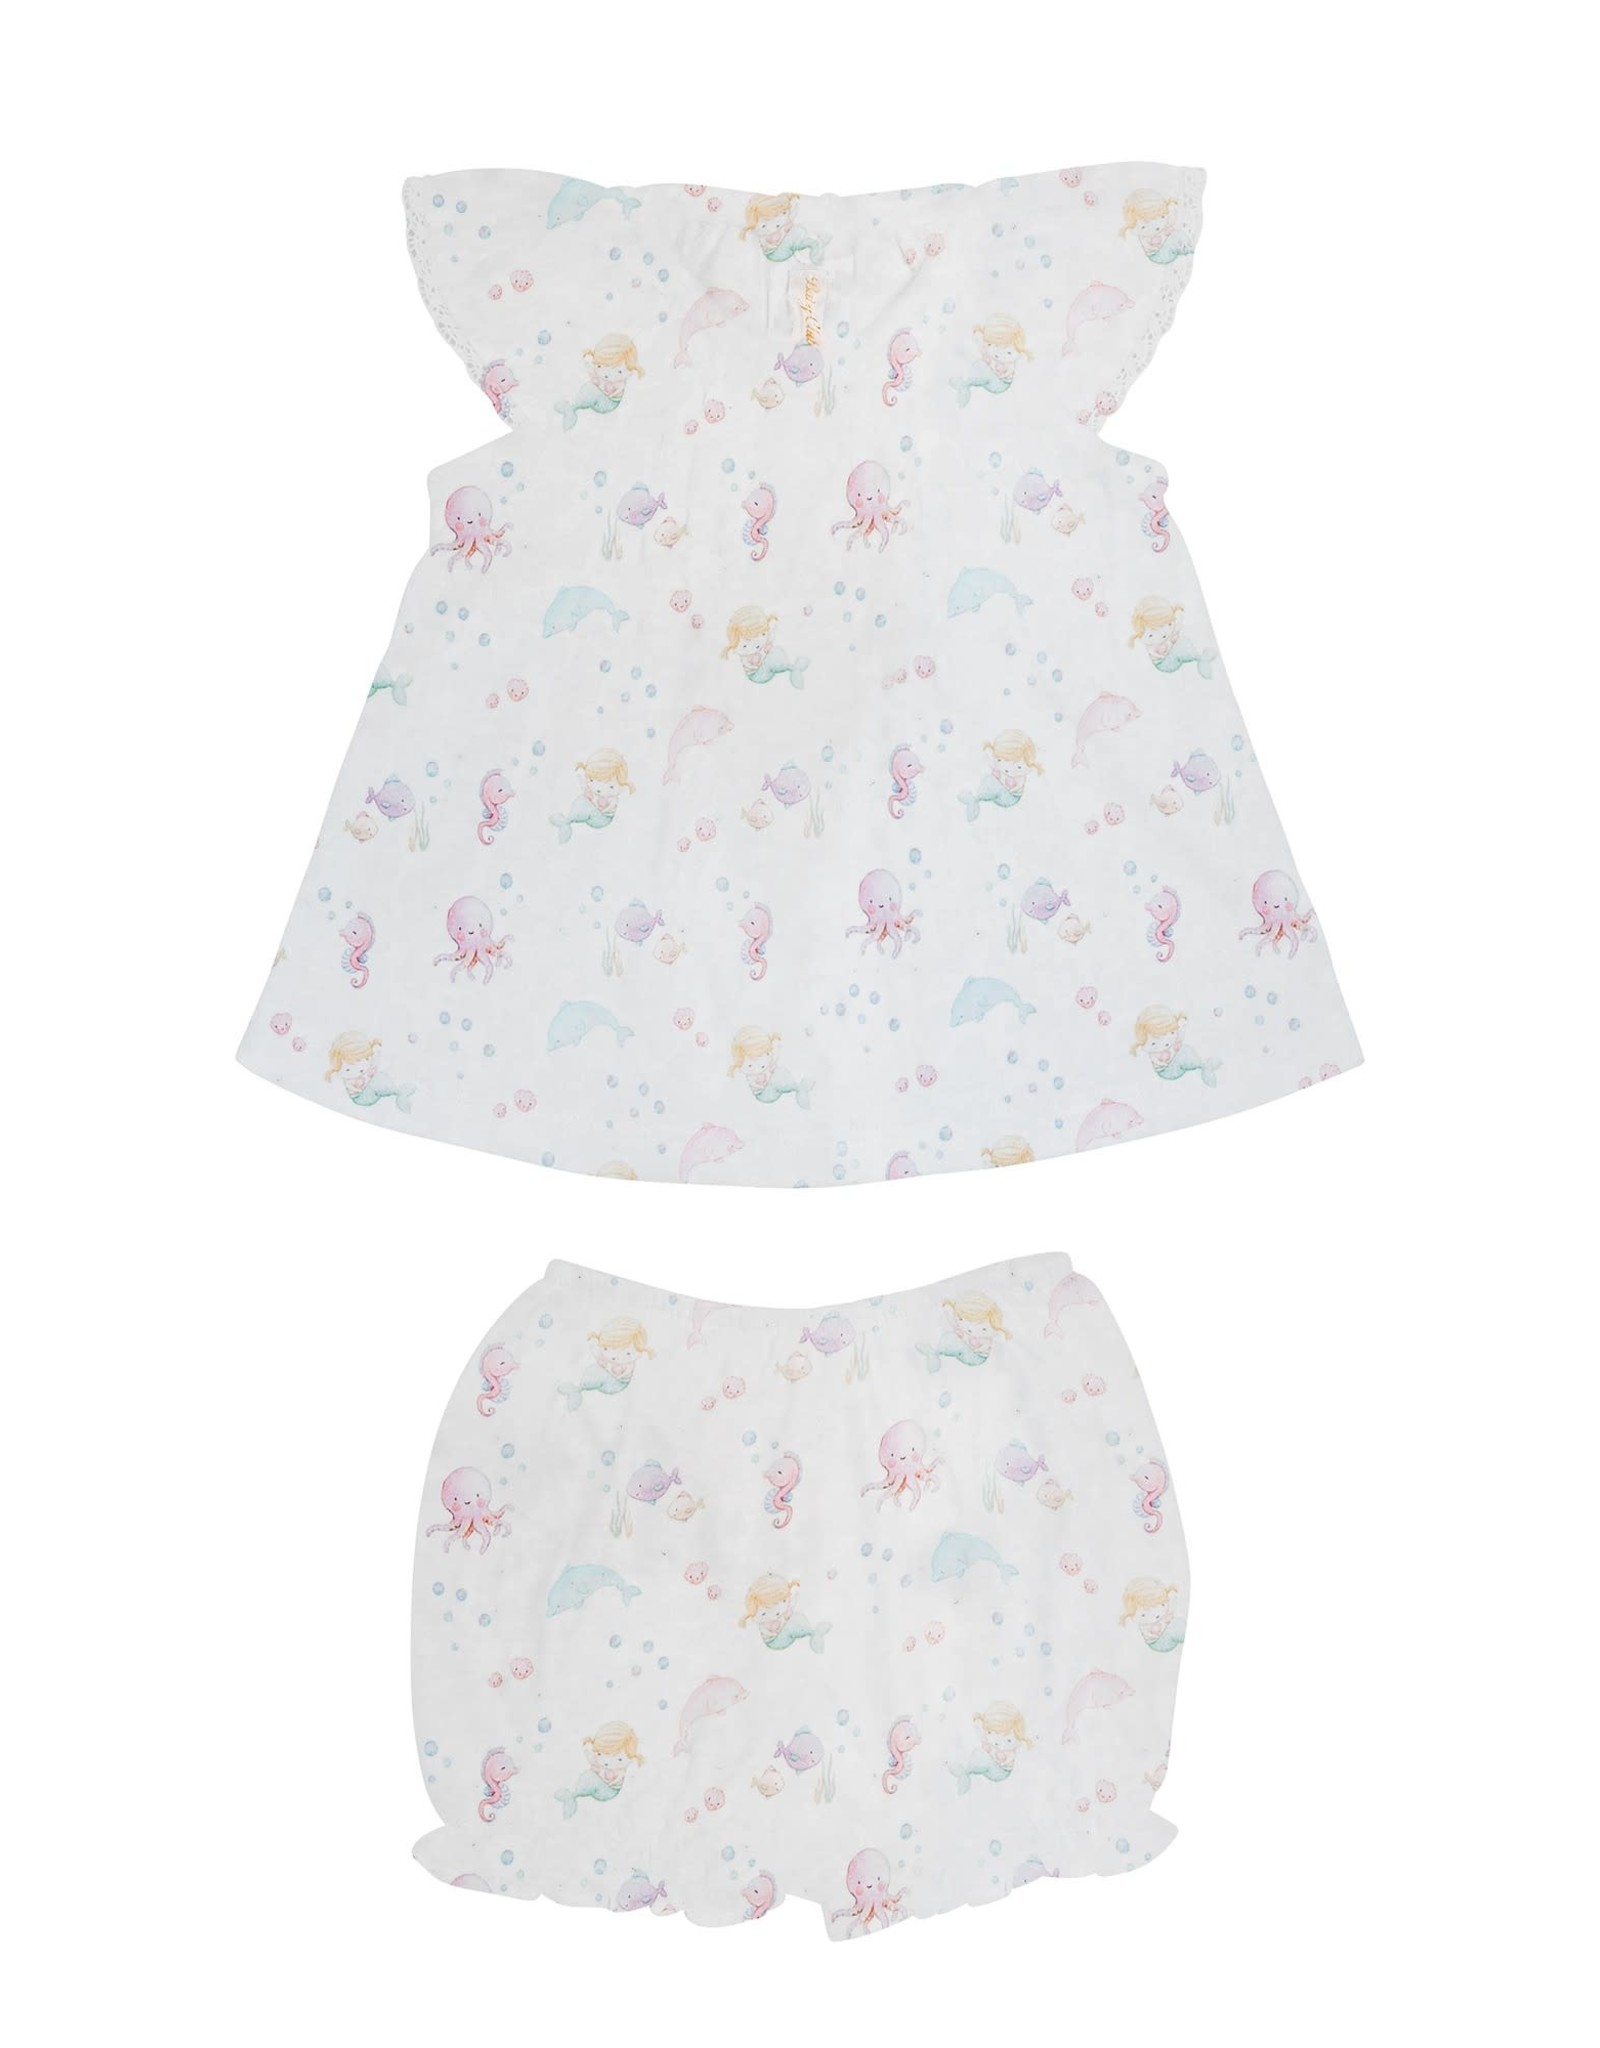 Baby Club Chic Under the Sea Pink Blouse & Bloomer Set